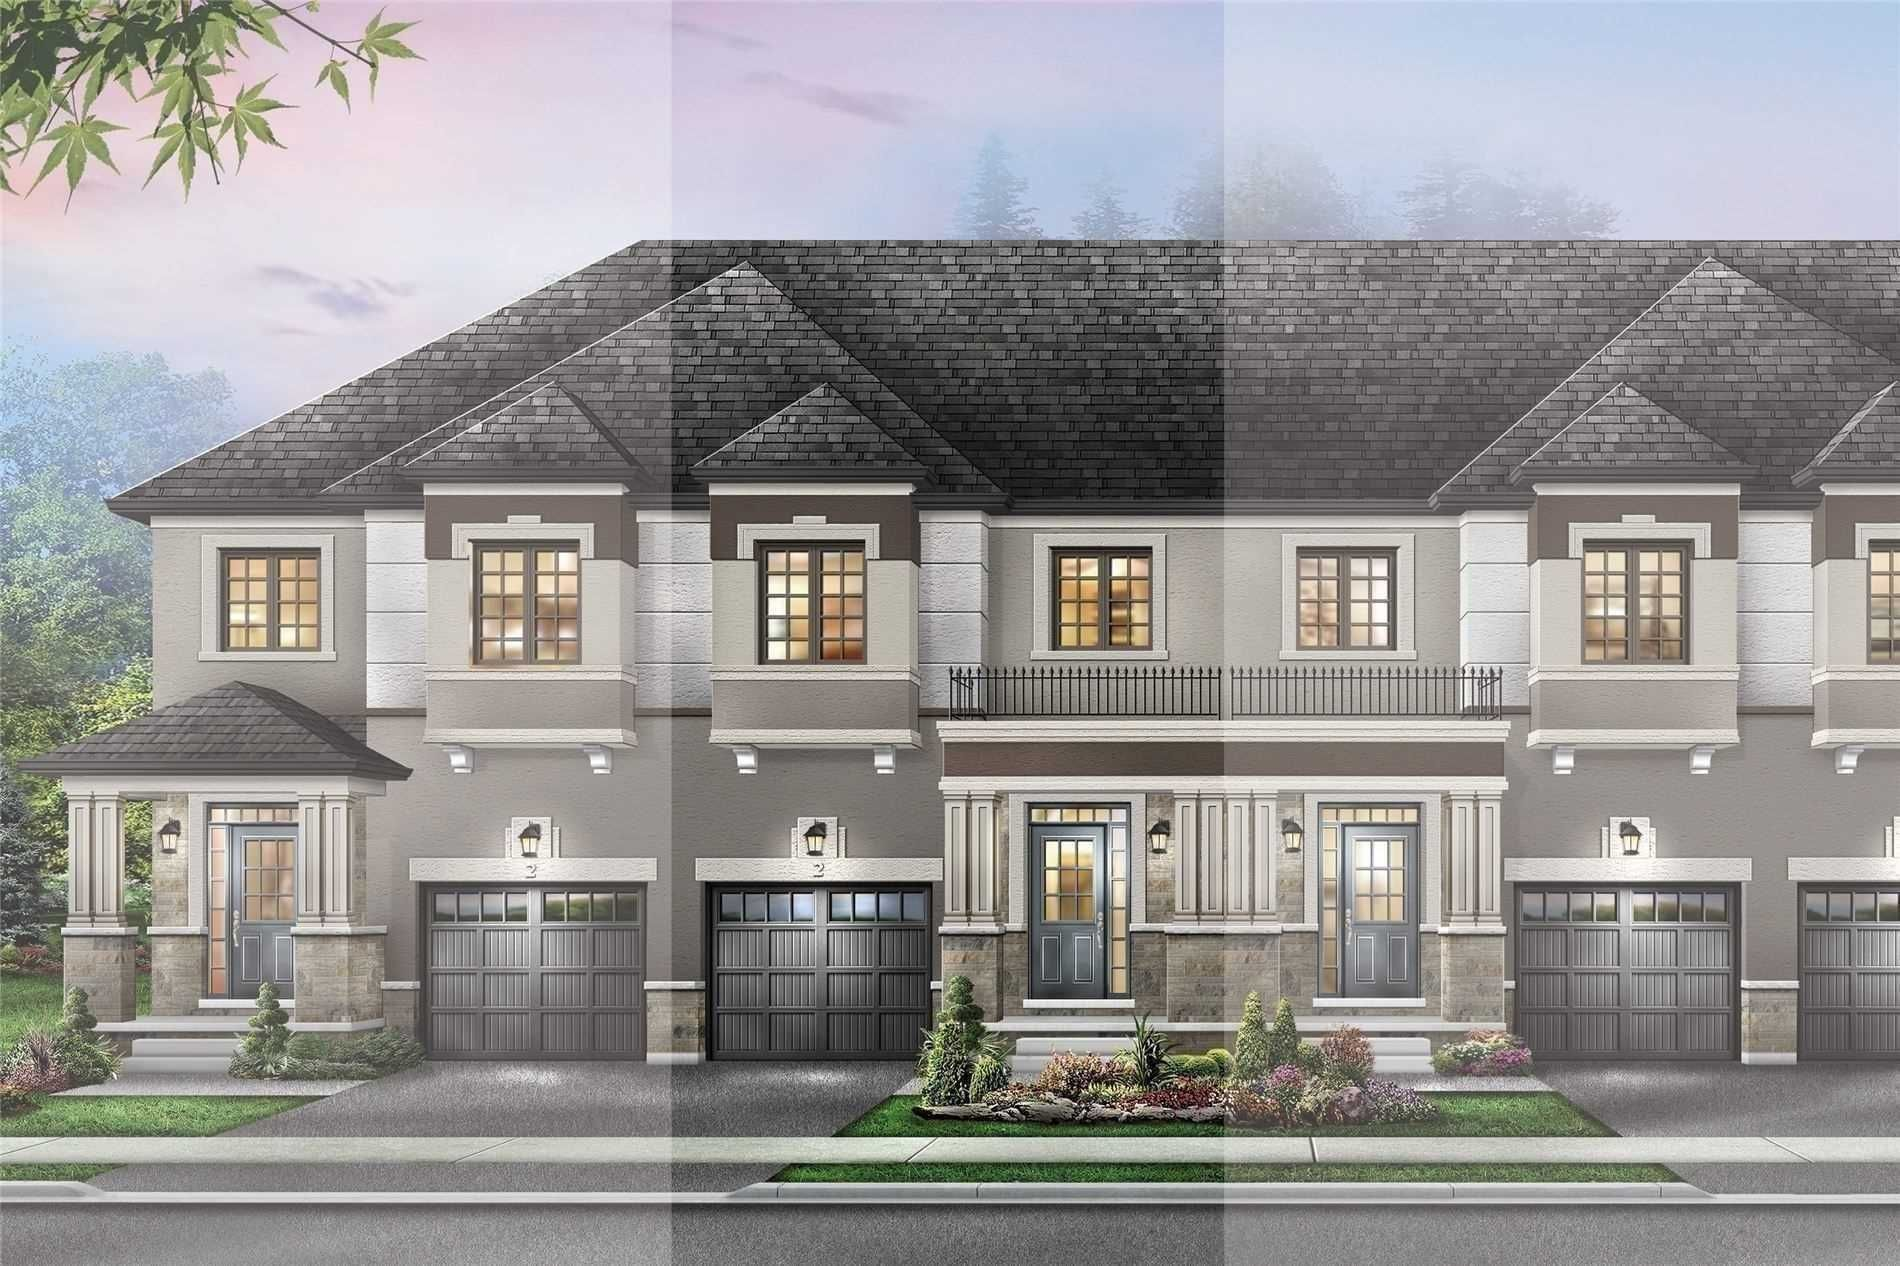 Main Photo: 156 Flagg Ave in Brant: Paris Freehold for sale : MLS®# X5320268